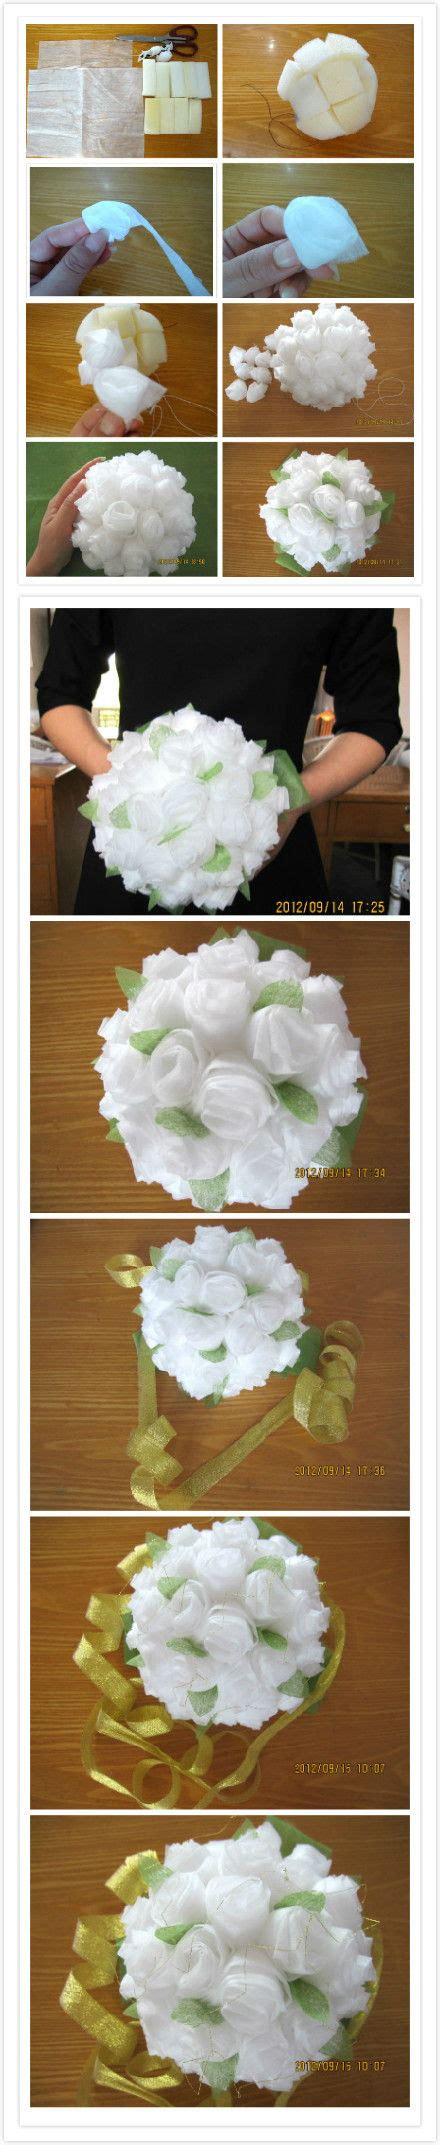 How To Make A Tissue Paper Flower Bouquet - how to make baby tissue paper flower bouquet step by step